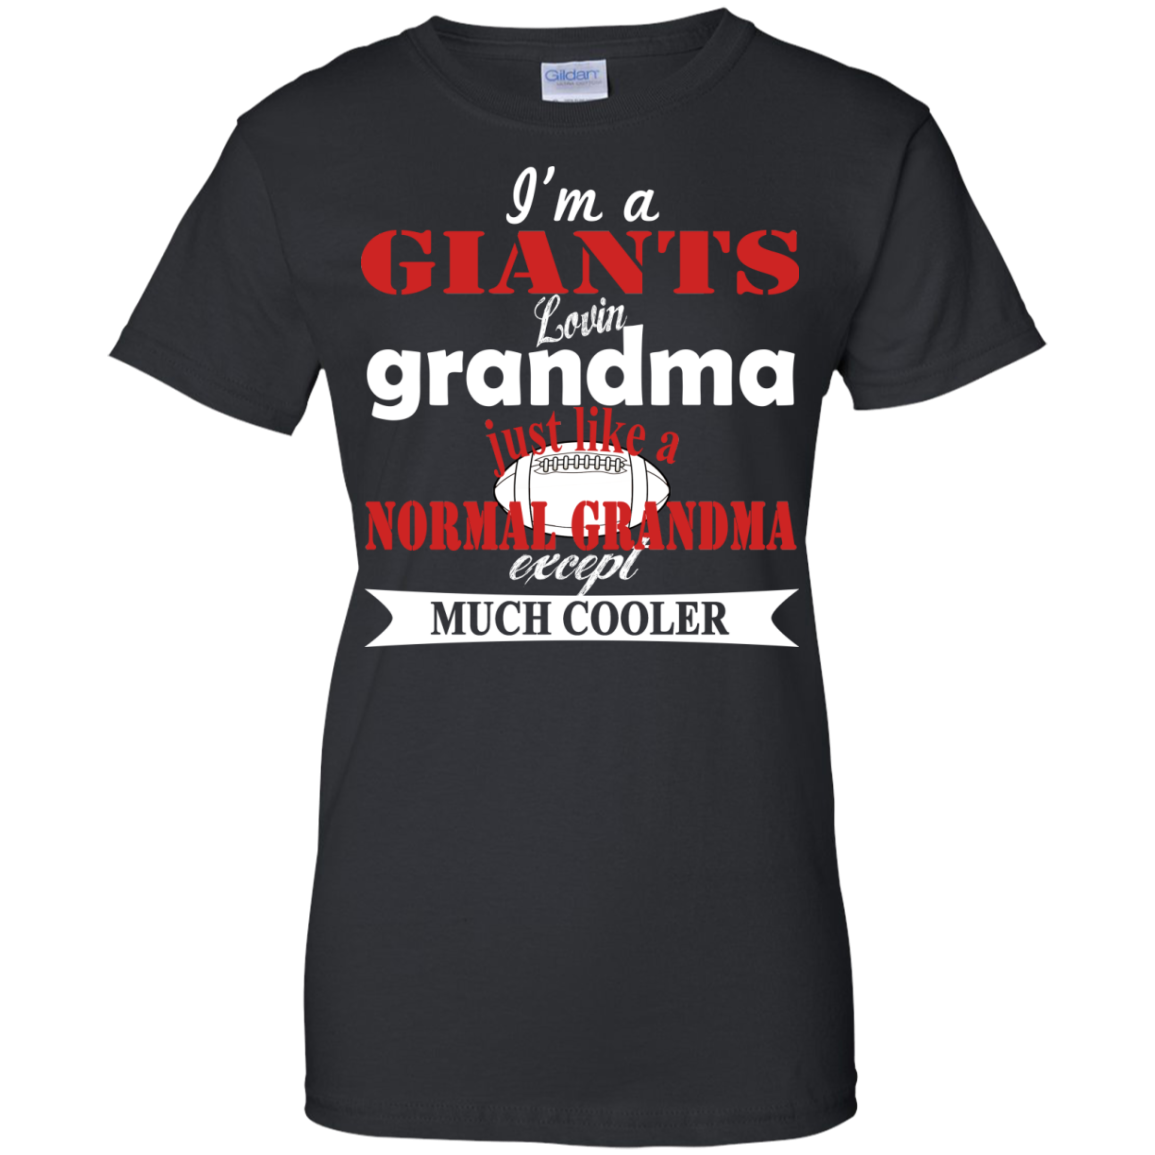 I'm a GIANTS Lovin grandma just like a Normal GRANDMA except Much Cooler - The Sun Cat